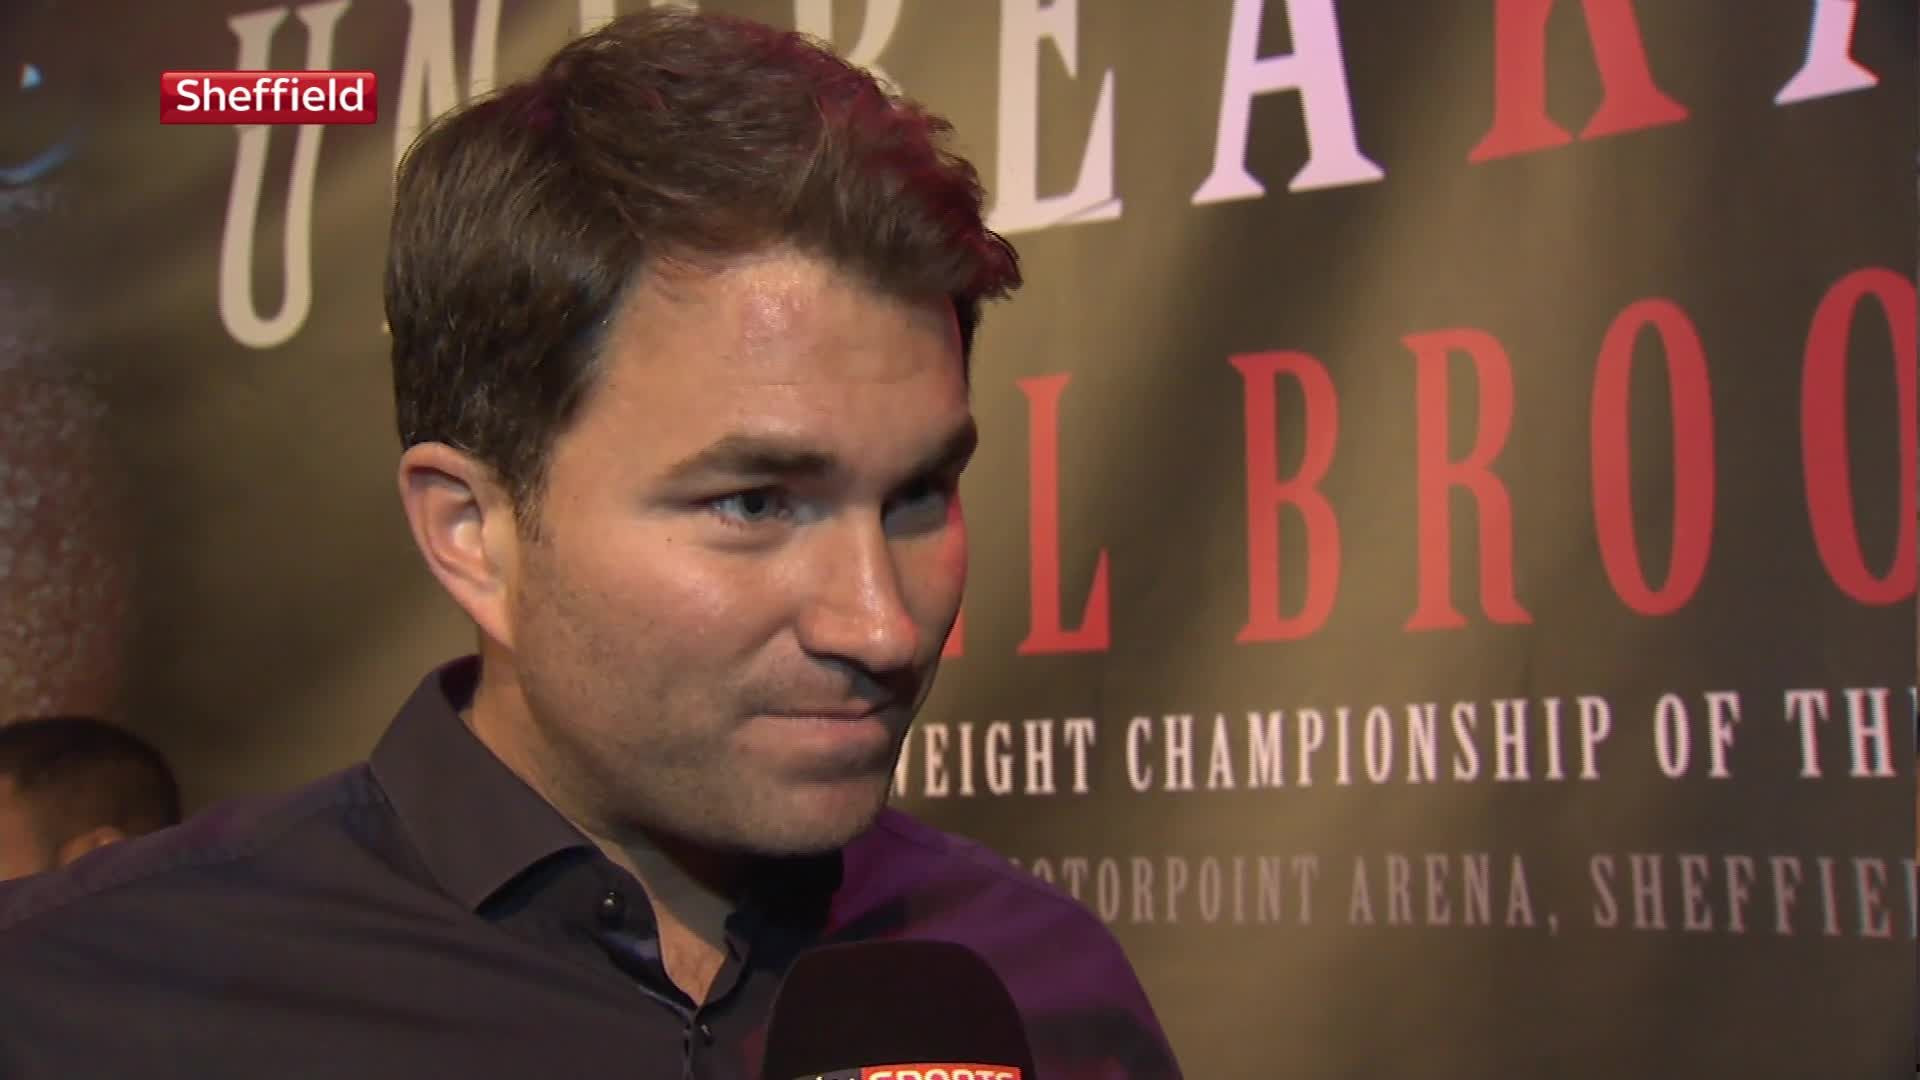 Eddie Hearn says Carl Froch still has 'the fire in his belly'